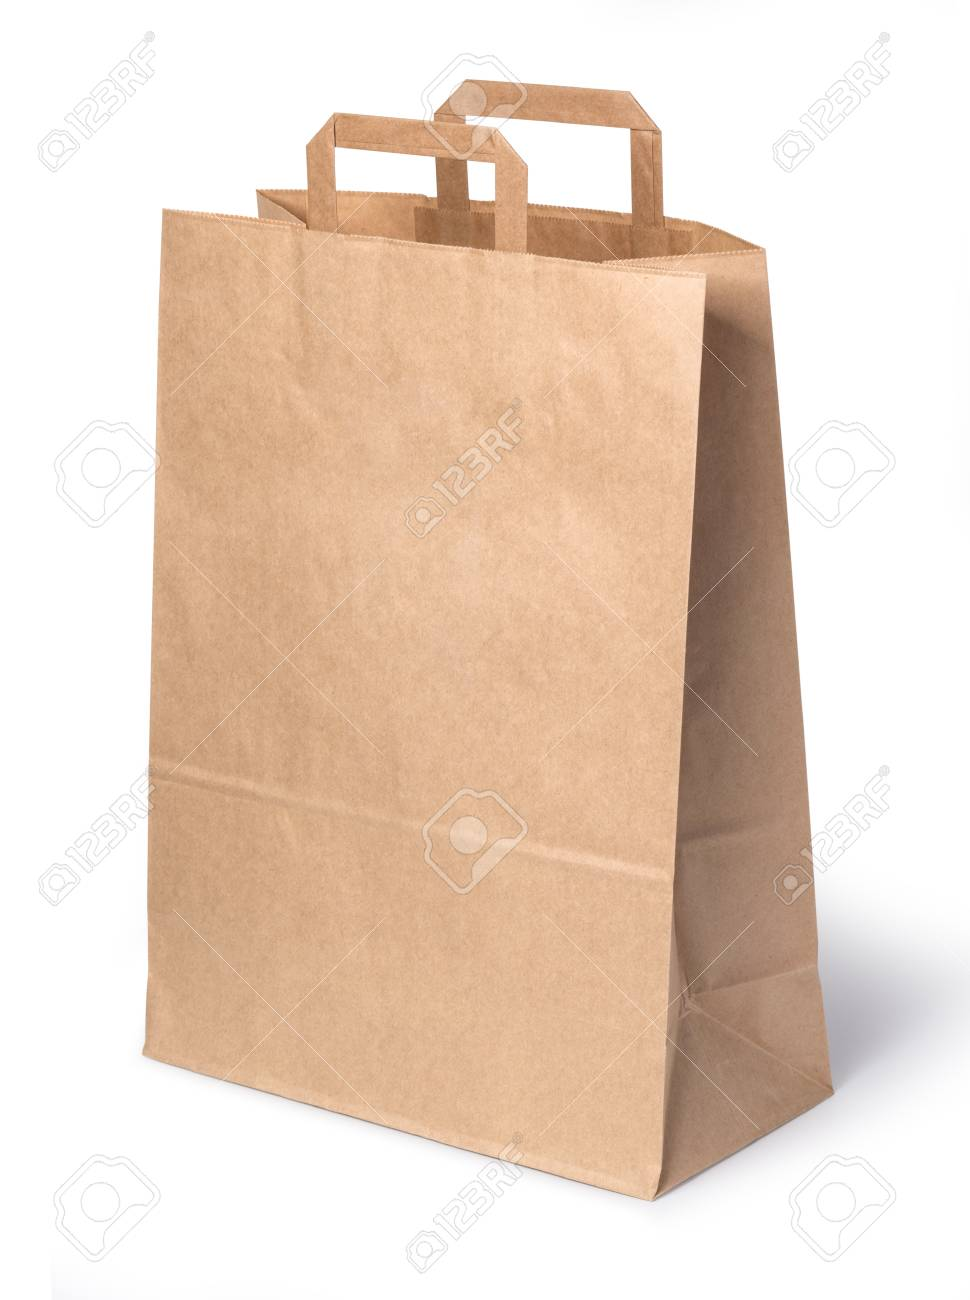 paper shopping bag isolated on white background with clipping path